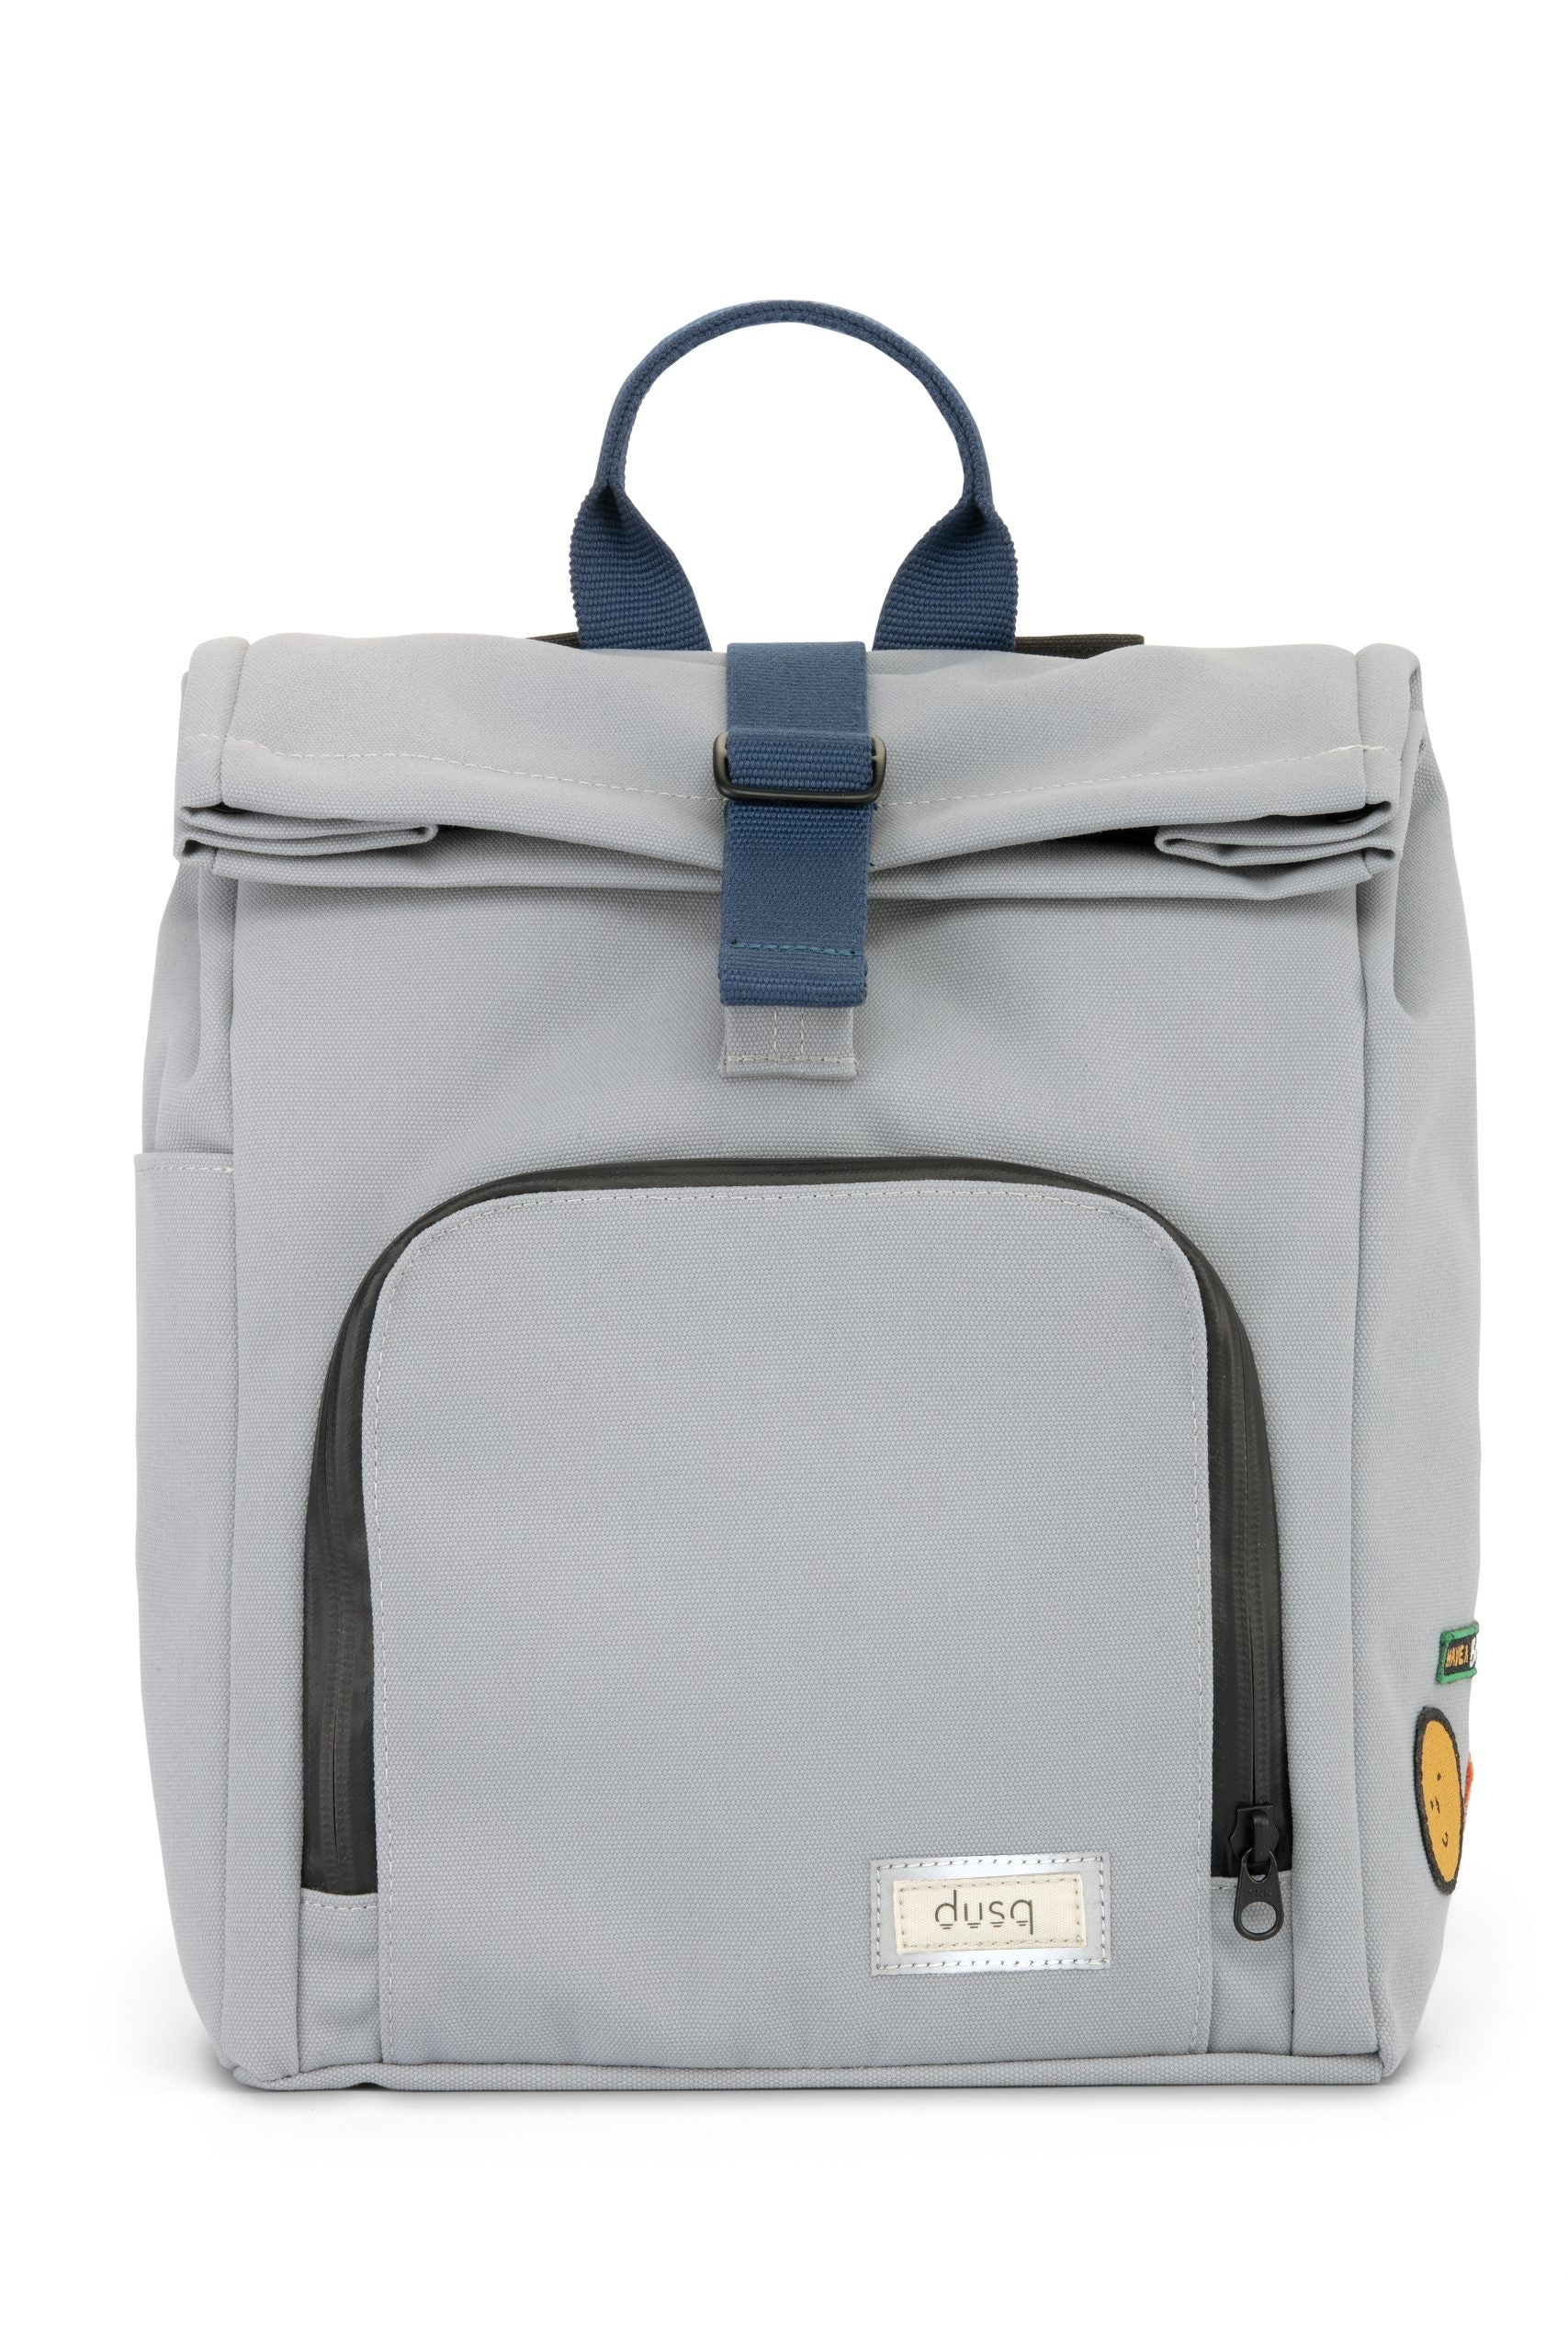 Dusq Dusq Mini Bag | Canvas – Cloud Grey - Pearls & Swines